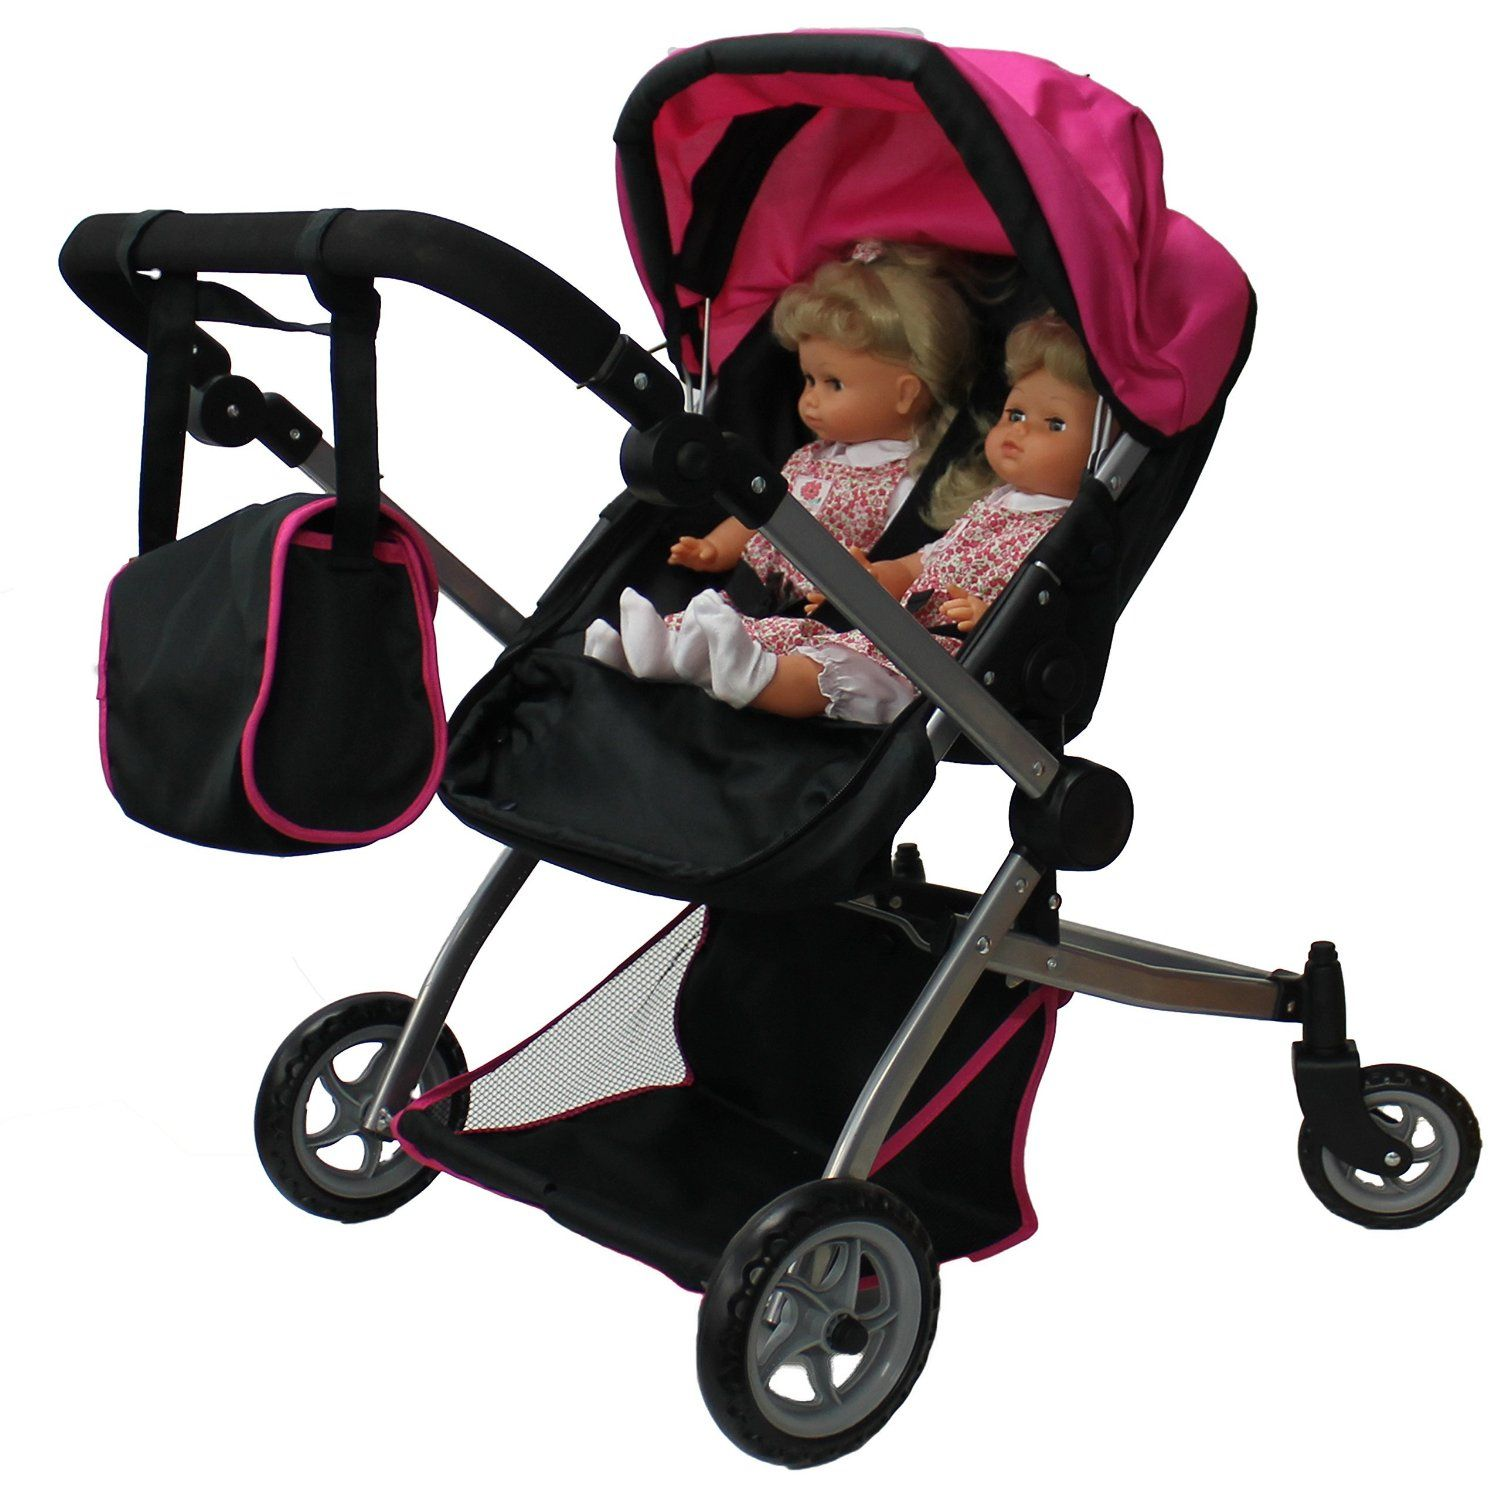 Babyboo Deluxe Twin Doll Pram/Stroller with Free Carriage